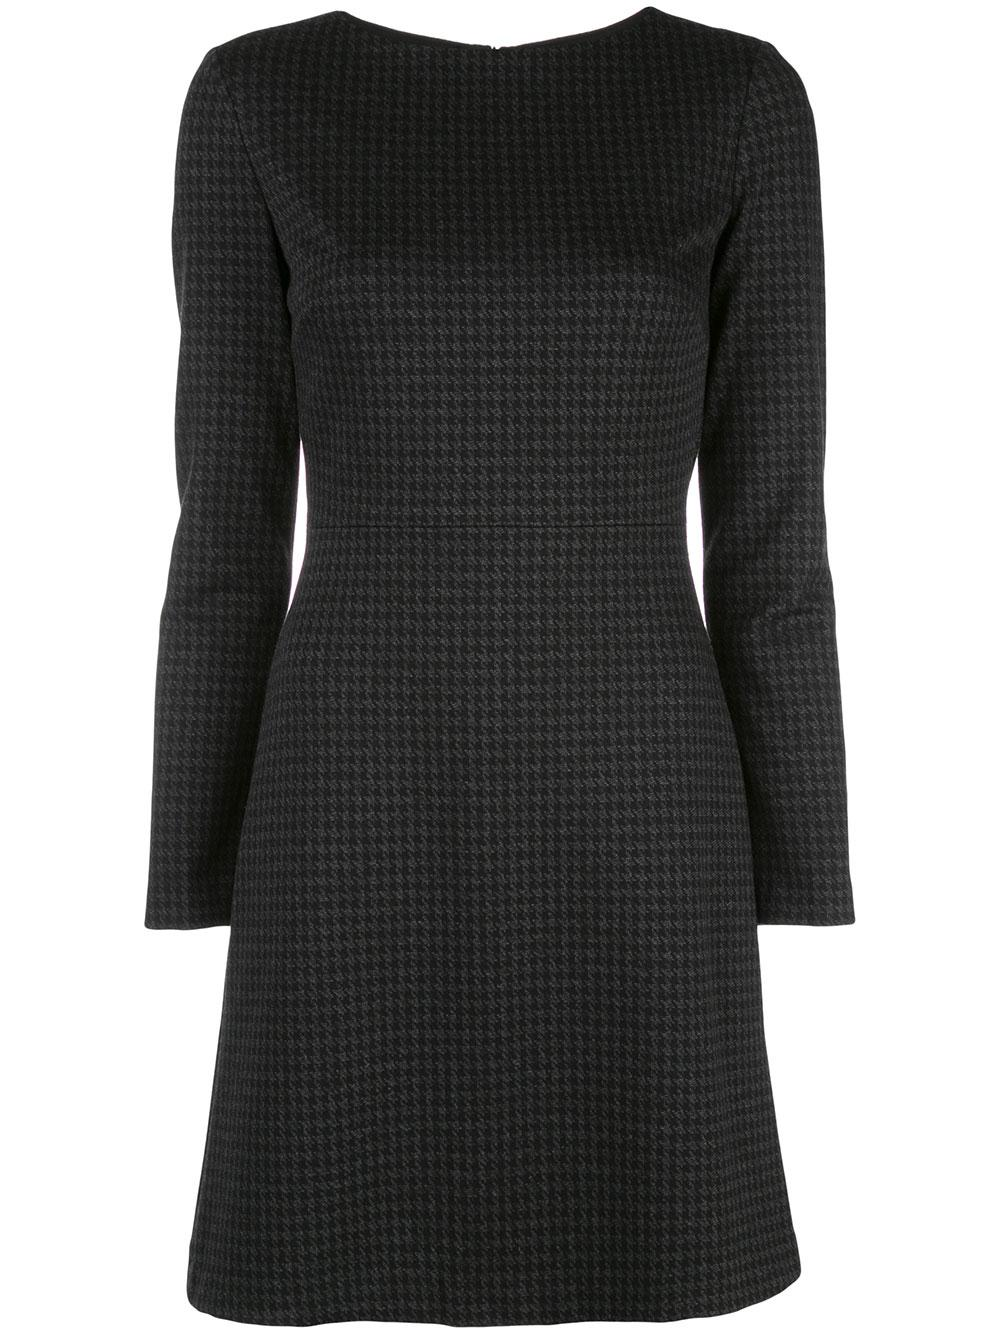 Kamilina Houndstooth Long Sleeve Dress